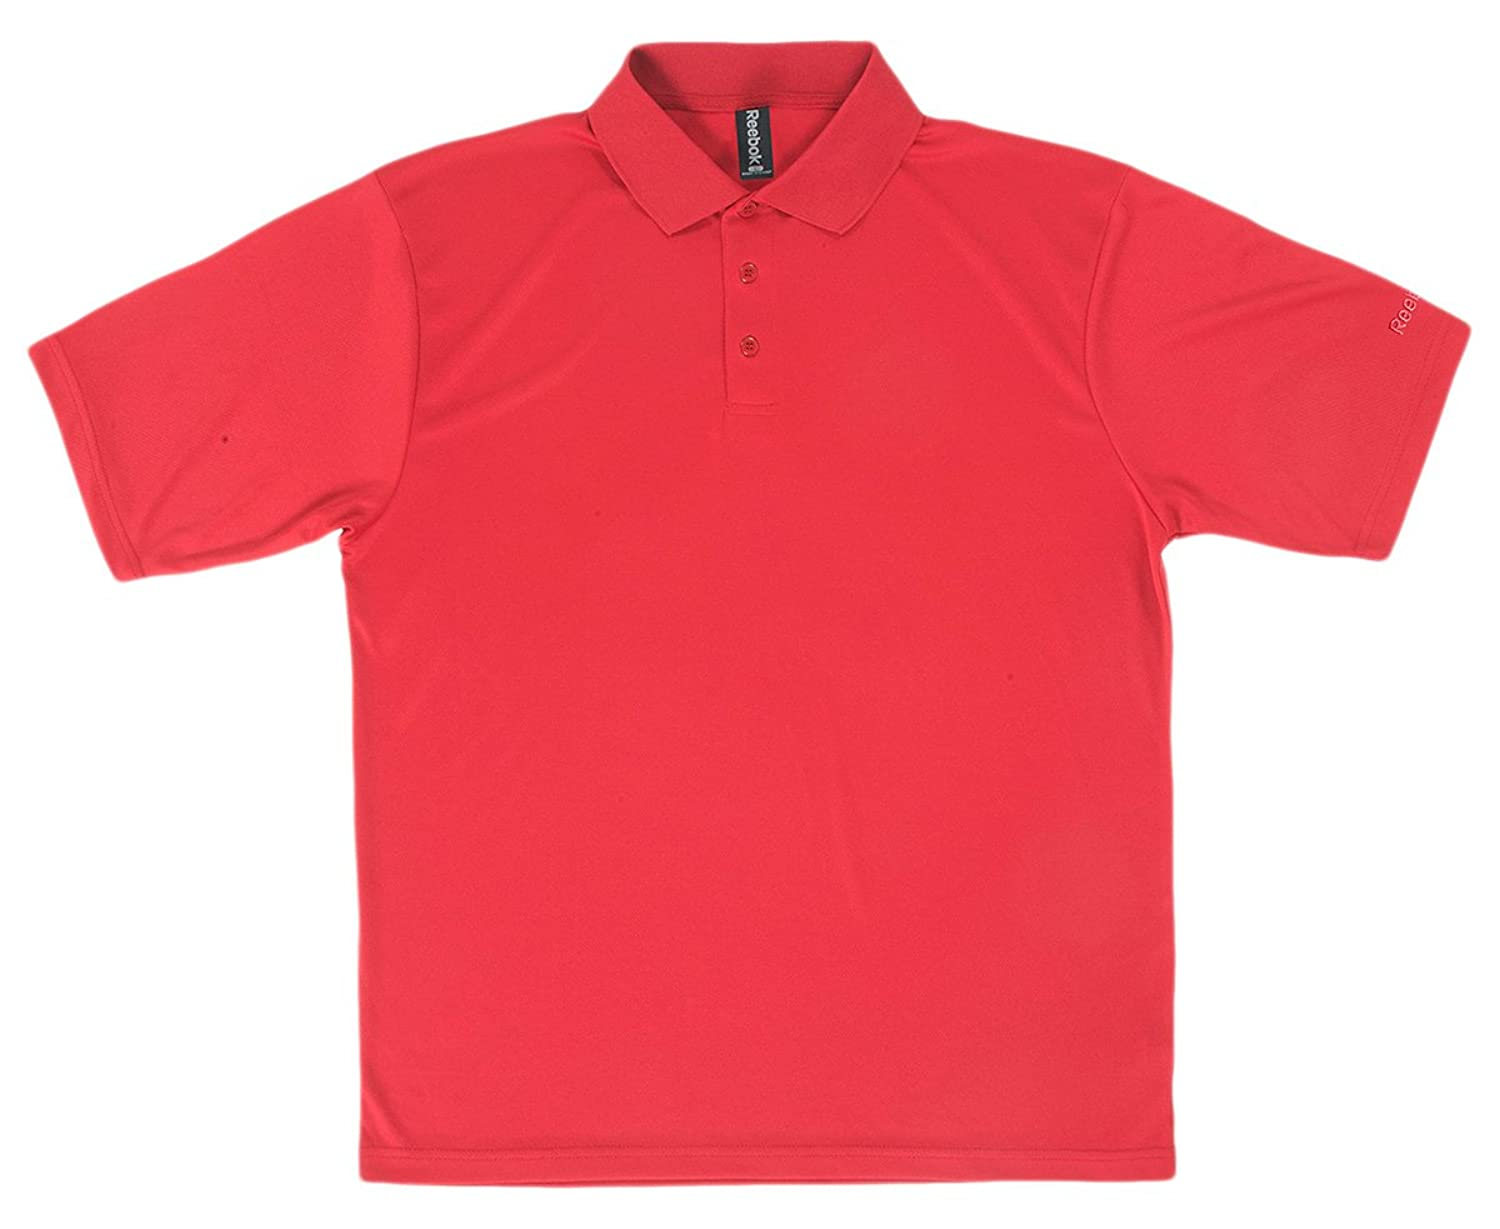 Gildan Men's Moisture Wicking Bottom Hem Pique Polo